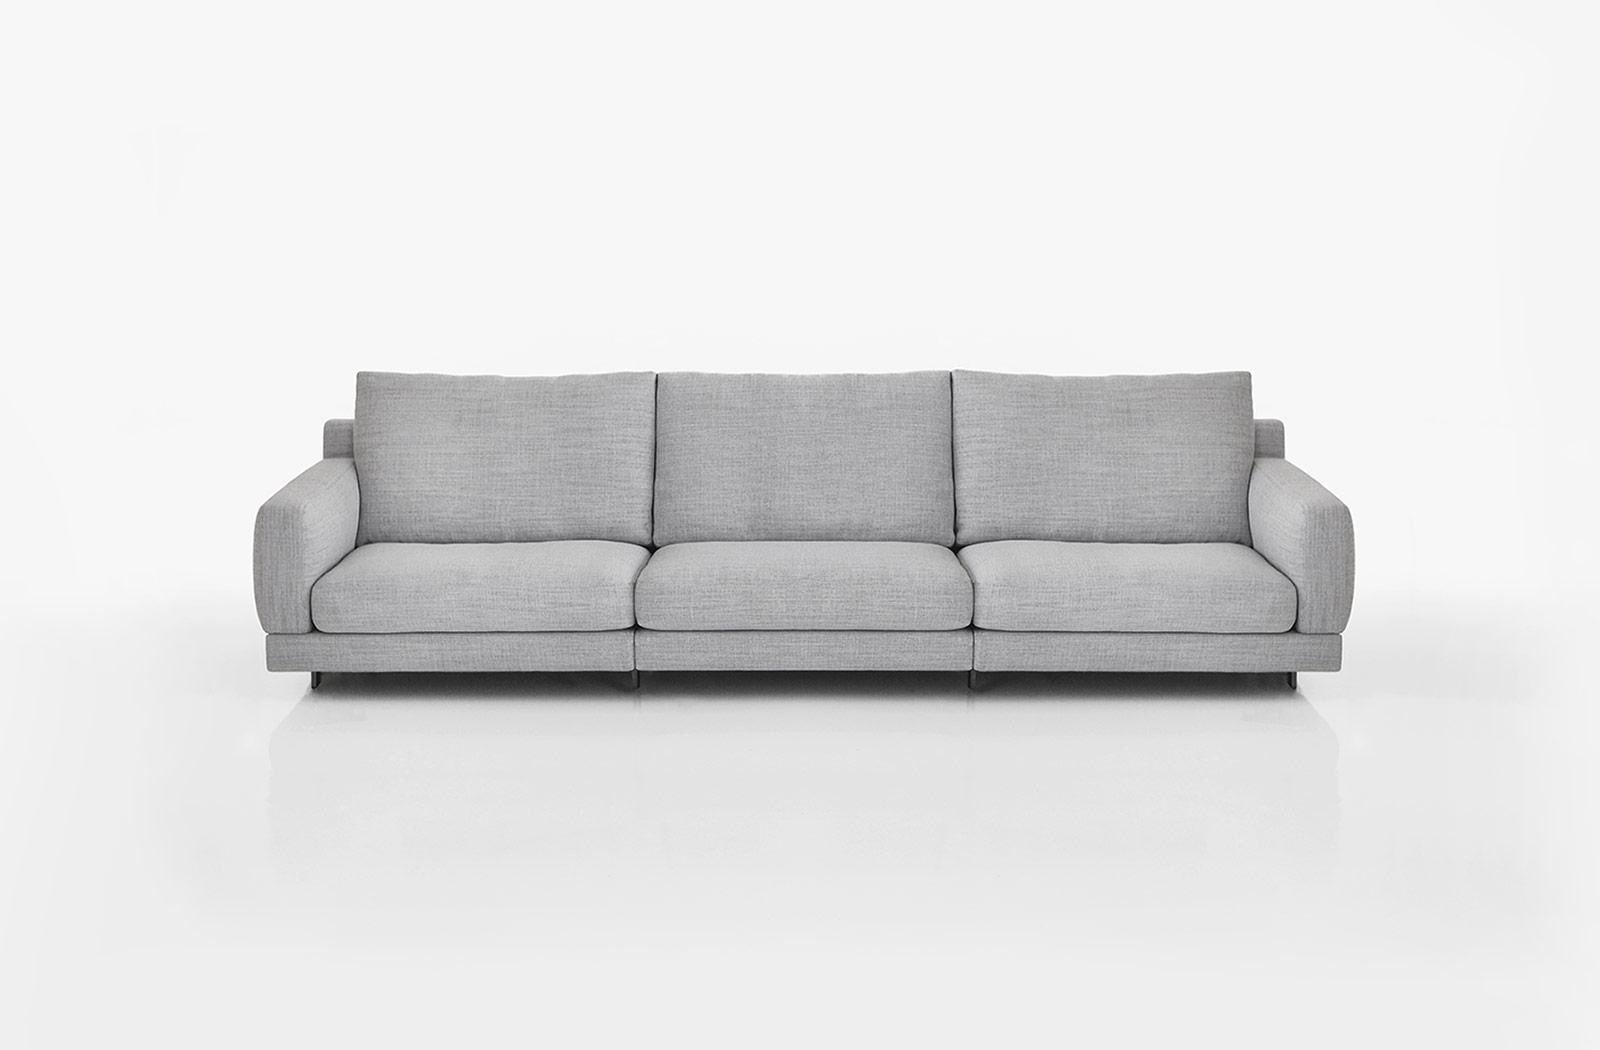 Elle | Bensen Intended For Bensen Sofas (View 10 of 20)